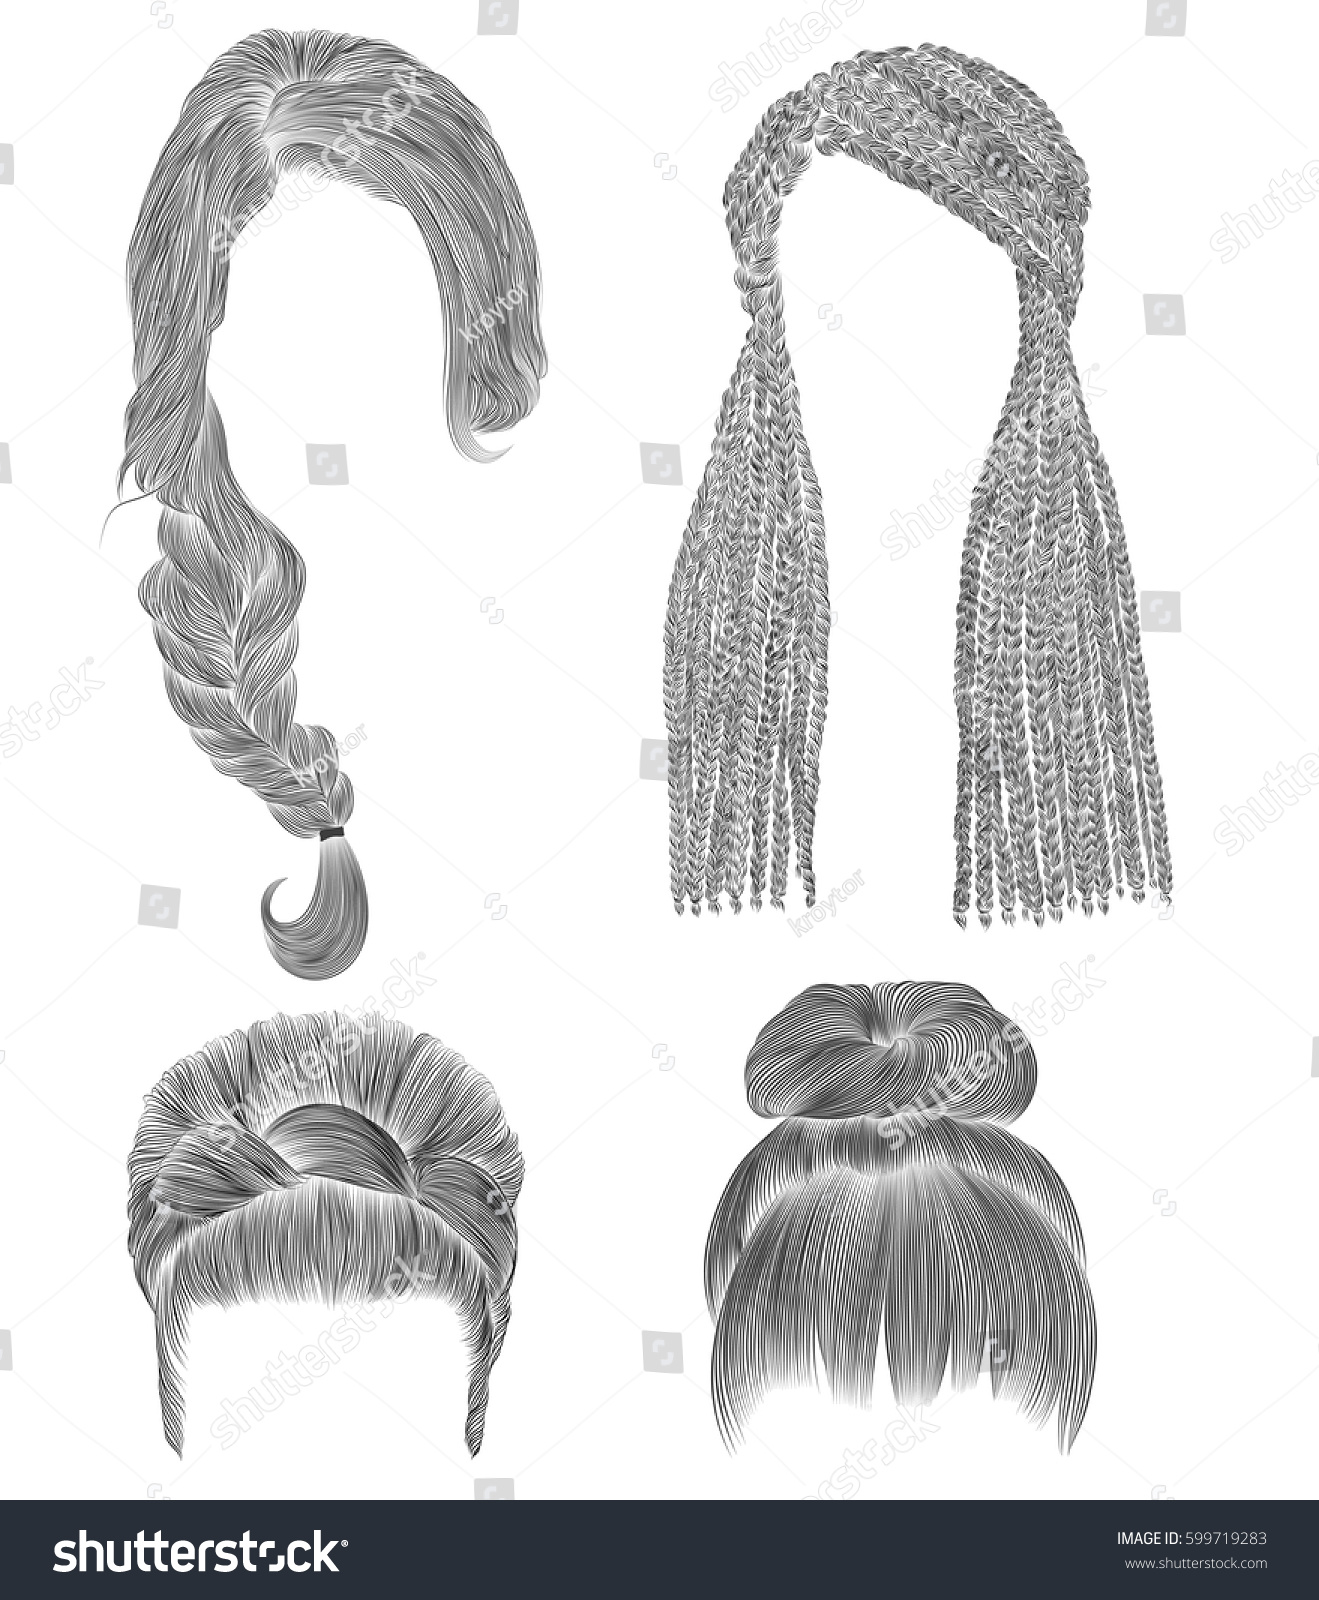 Set woman hairs black pencil drawing sketch bun babette with fringe hairstyle women